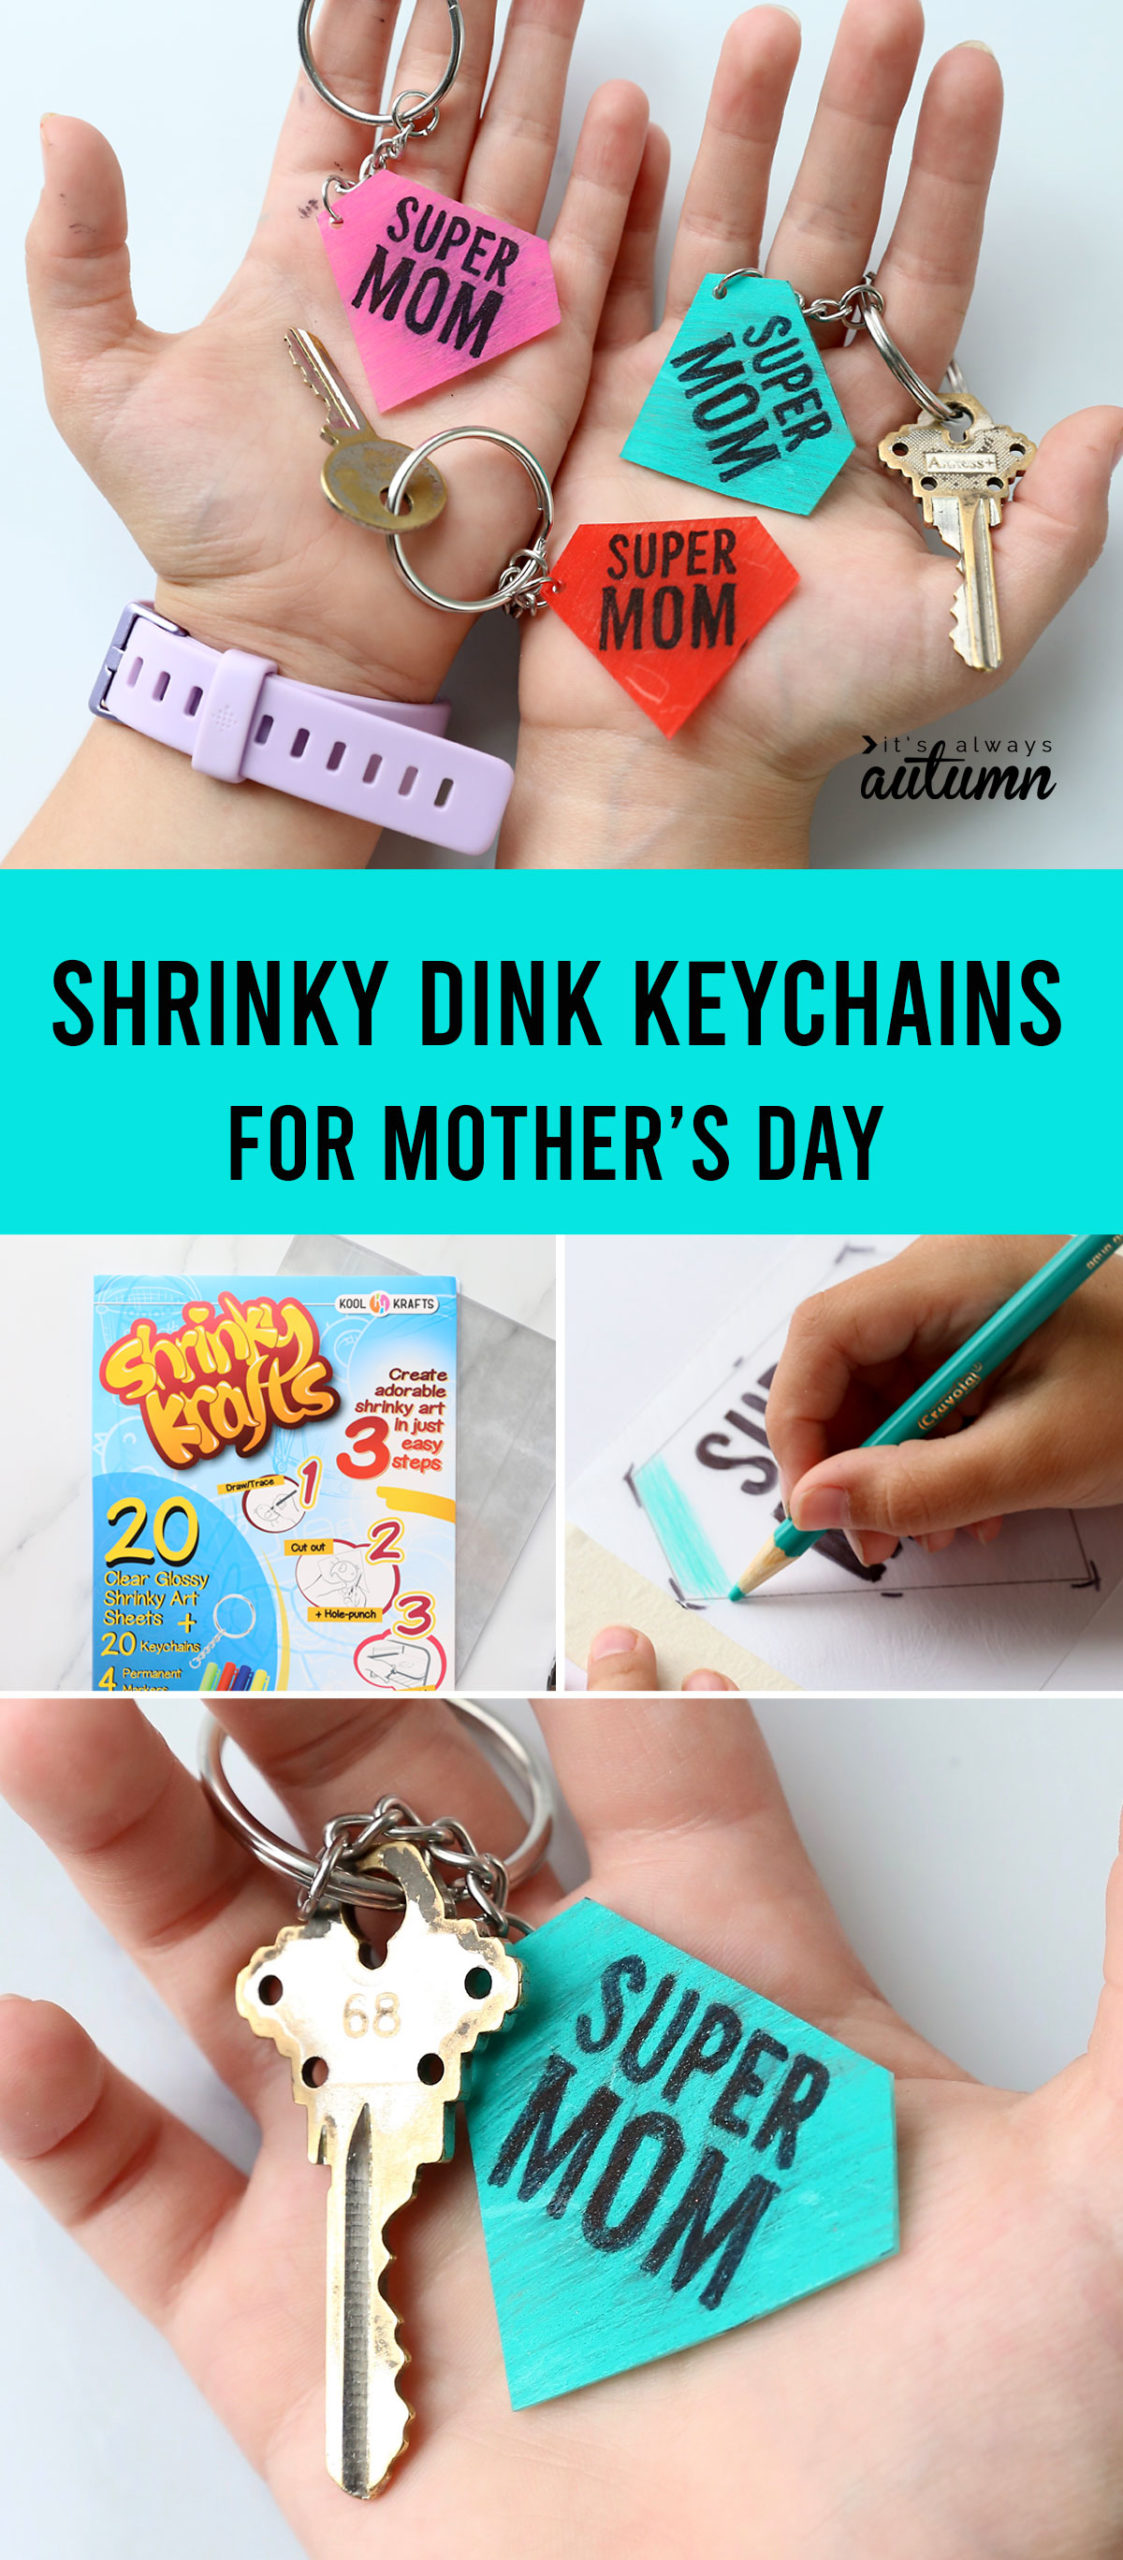 Shrinky dink keychains are an adorable DIY gift for Mother's Day!